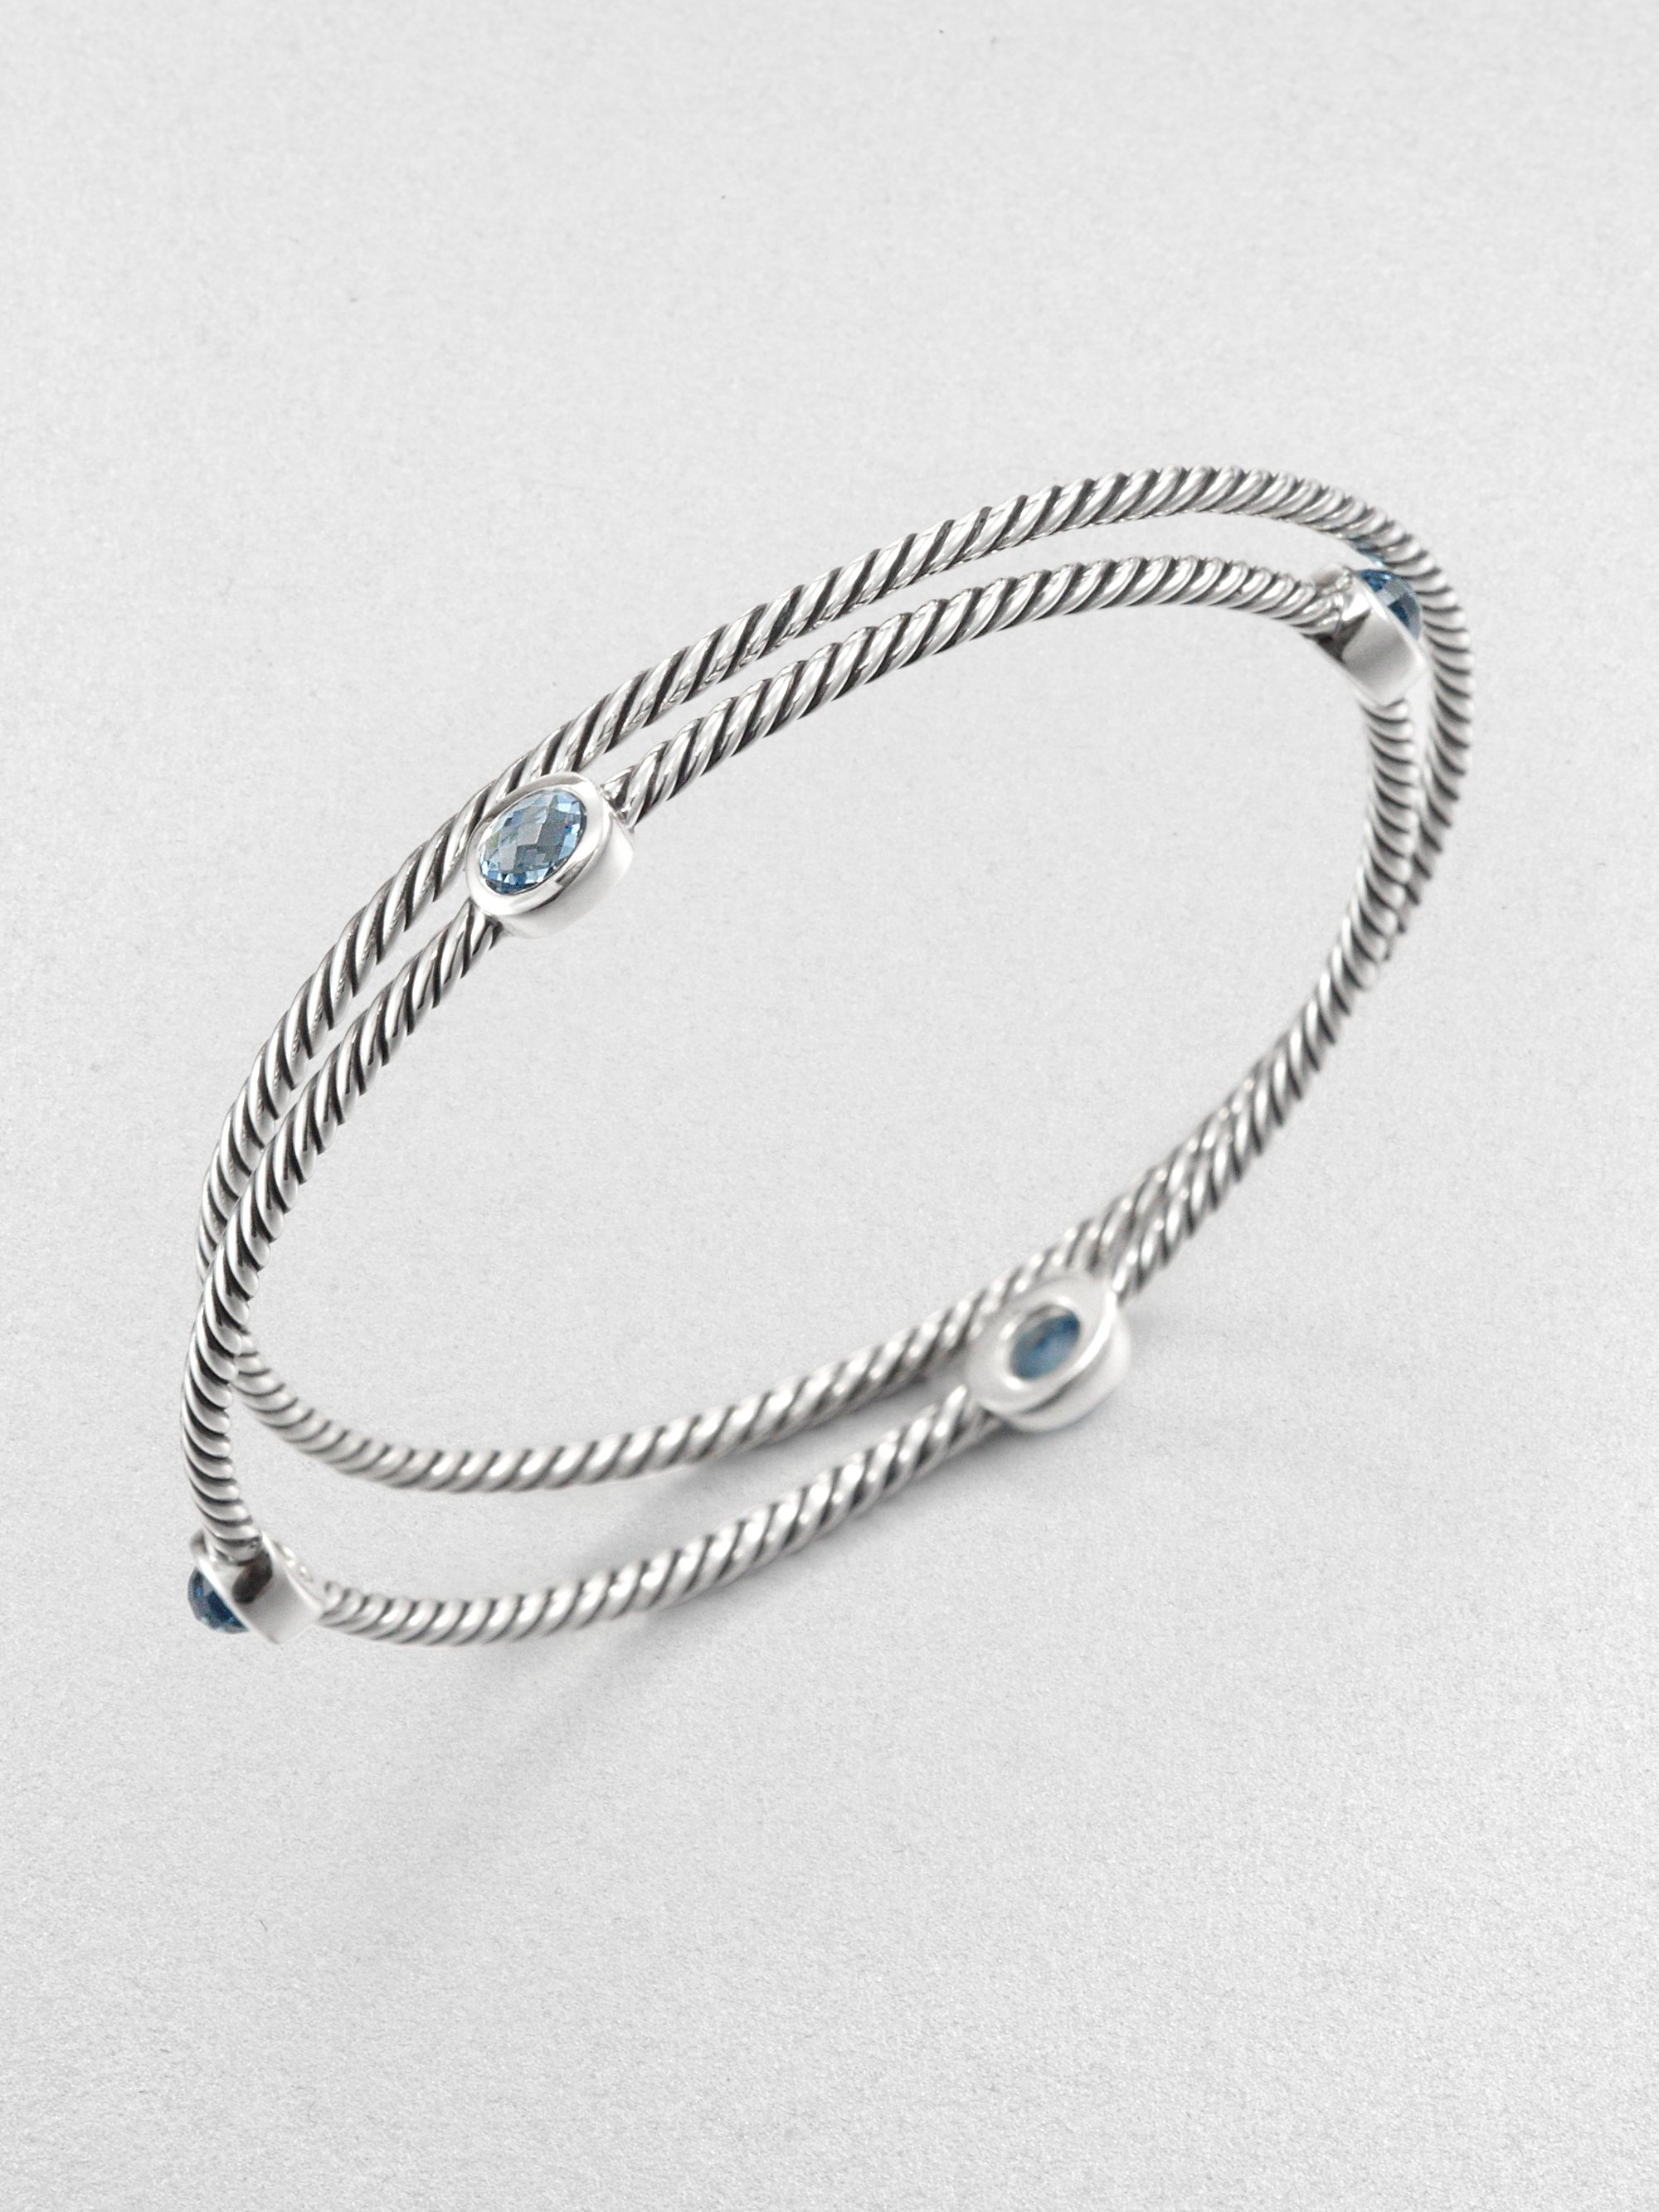 David Yurman Blue Topaz Sterling Silver Bangle Bracelet